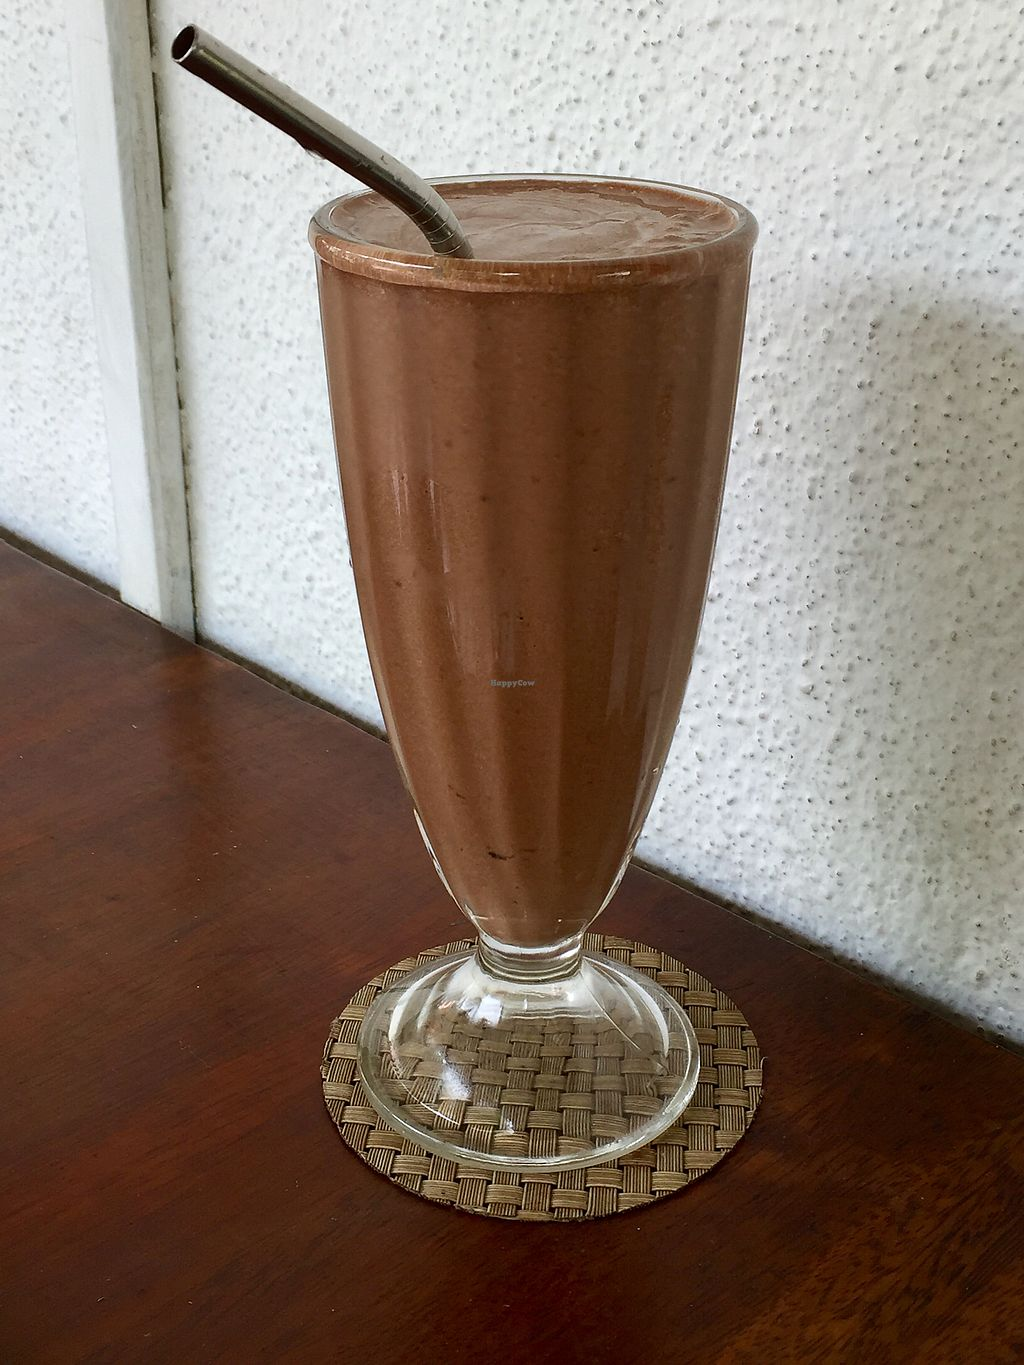 """Photo of Cafe Kumbuk Good Market  by <a href=""""/members/profile/peterstuckings"""">peterstuckings</a> <br/>Cacao Banana smoothie - vegan  <br/> March 14, 2018  - <a href='/contact/abuse/image/86812/370422'>Report</a>"""